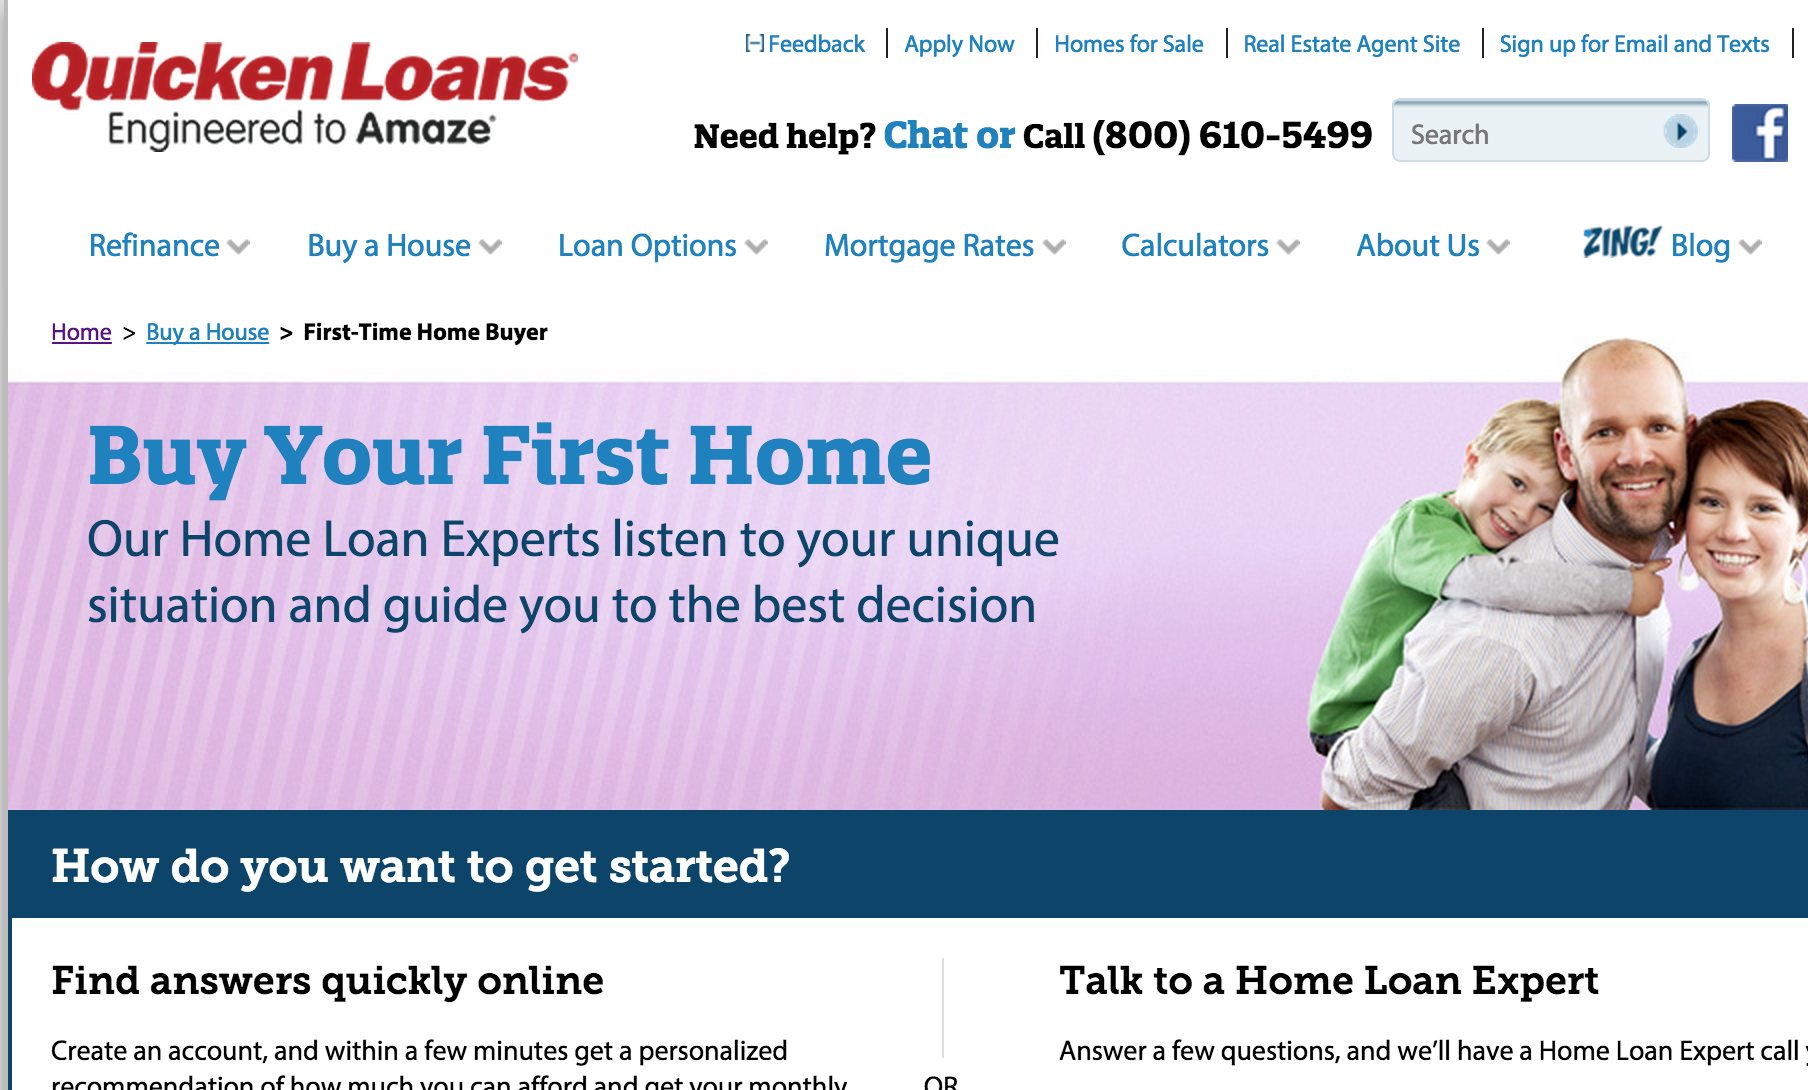 DOJ Sues Quicken Loans Over Improperly Underwritten Mortgages